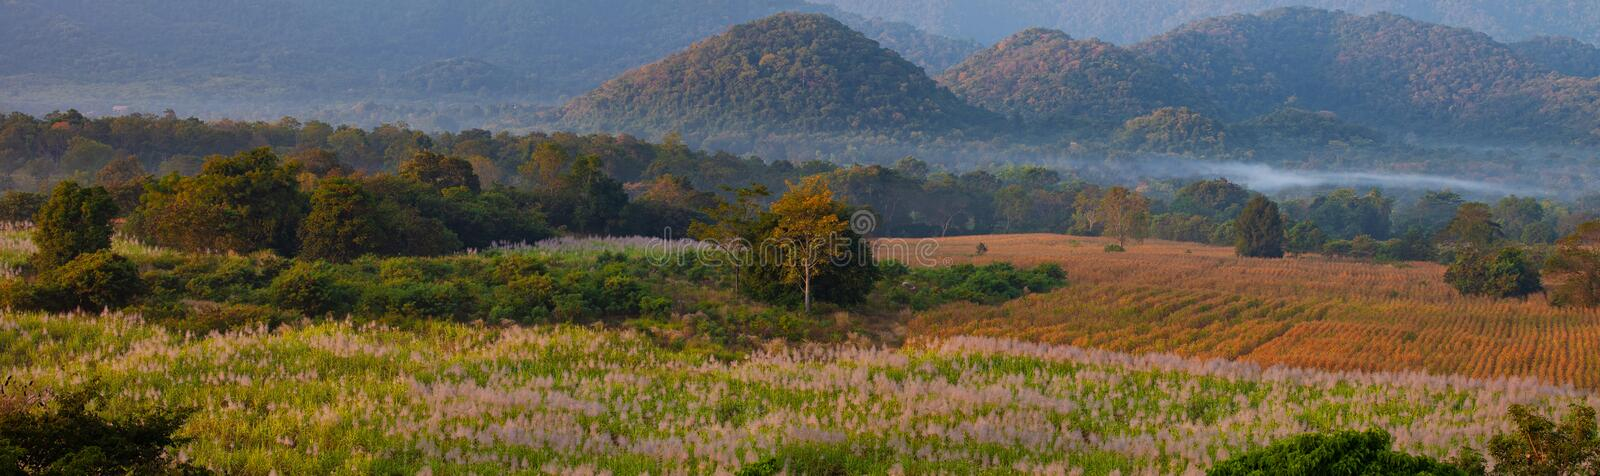 Mountain view of Khaoyai National Park, Thailand, with sugar cane and corn field plantation in the morning. Mountain view of Khao yai National Park, Thailand stock photo